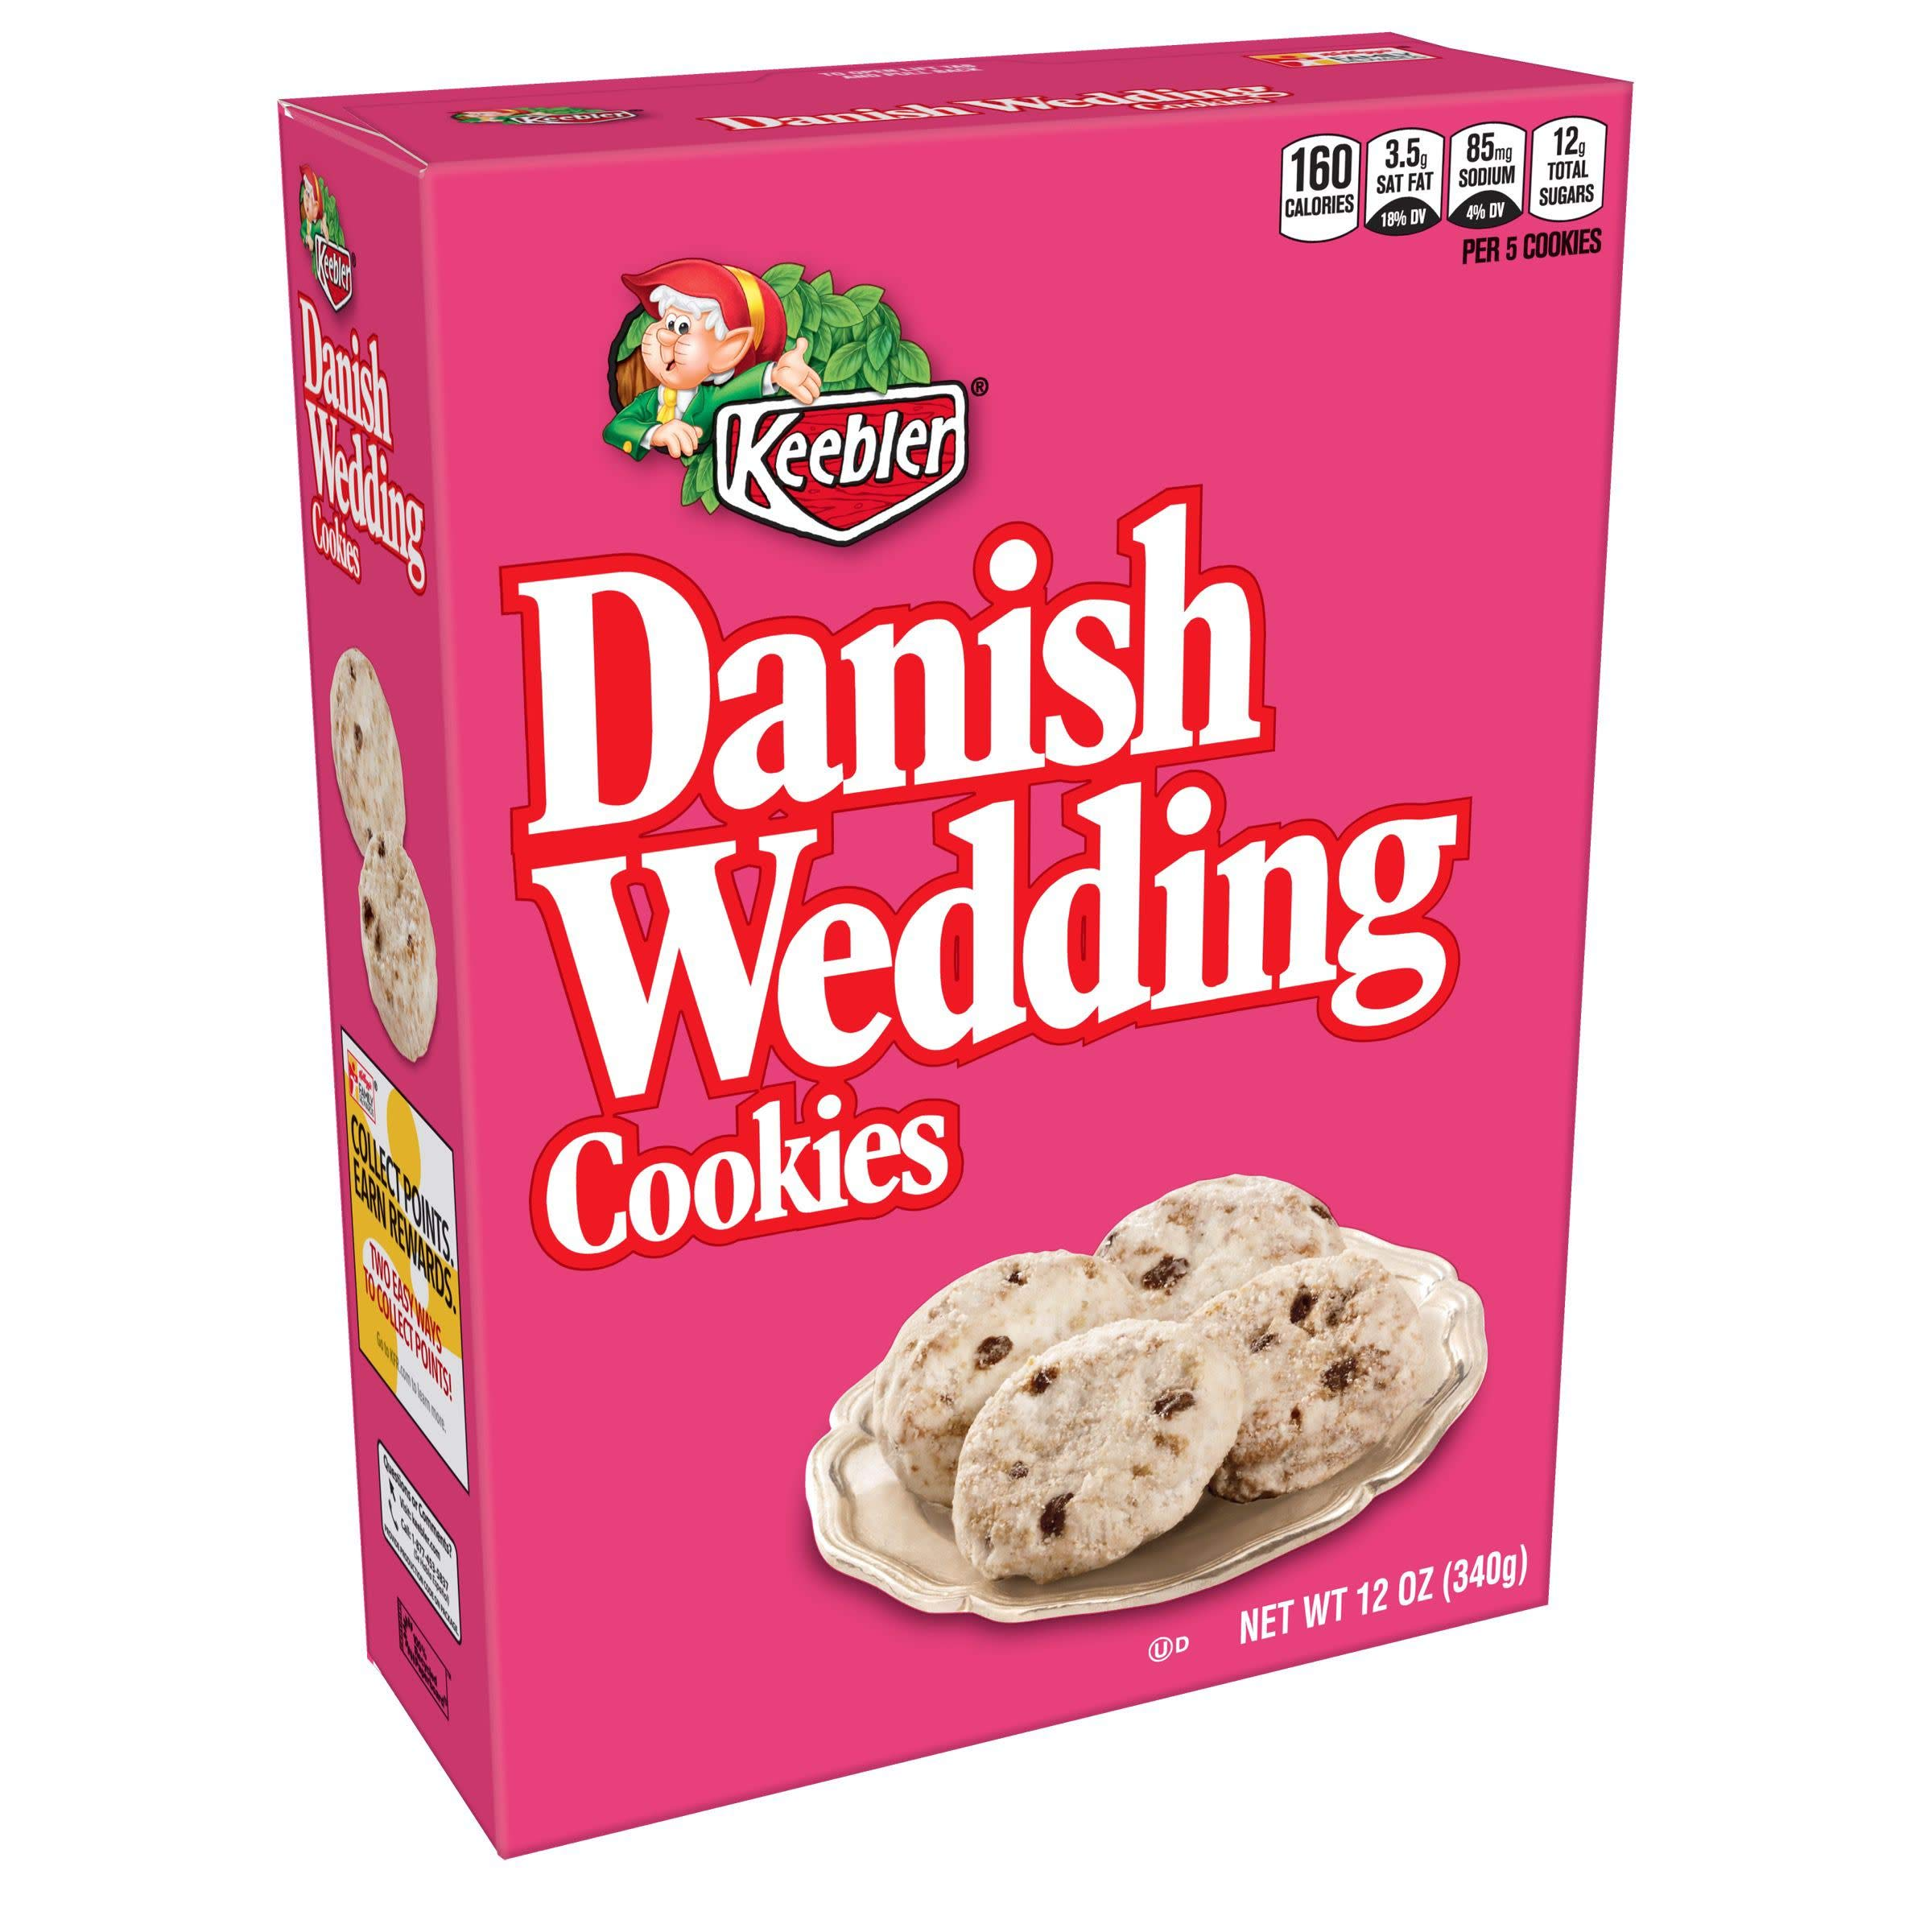 Keebler Cookies,Danish Wedding, Flavors of Coconut and Chocolatey Chips, 12 oz Box(Pack of 4)